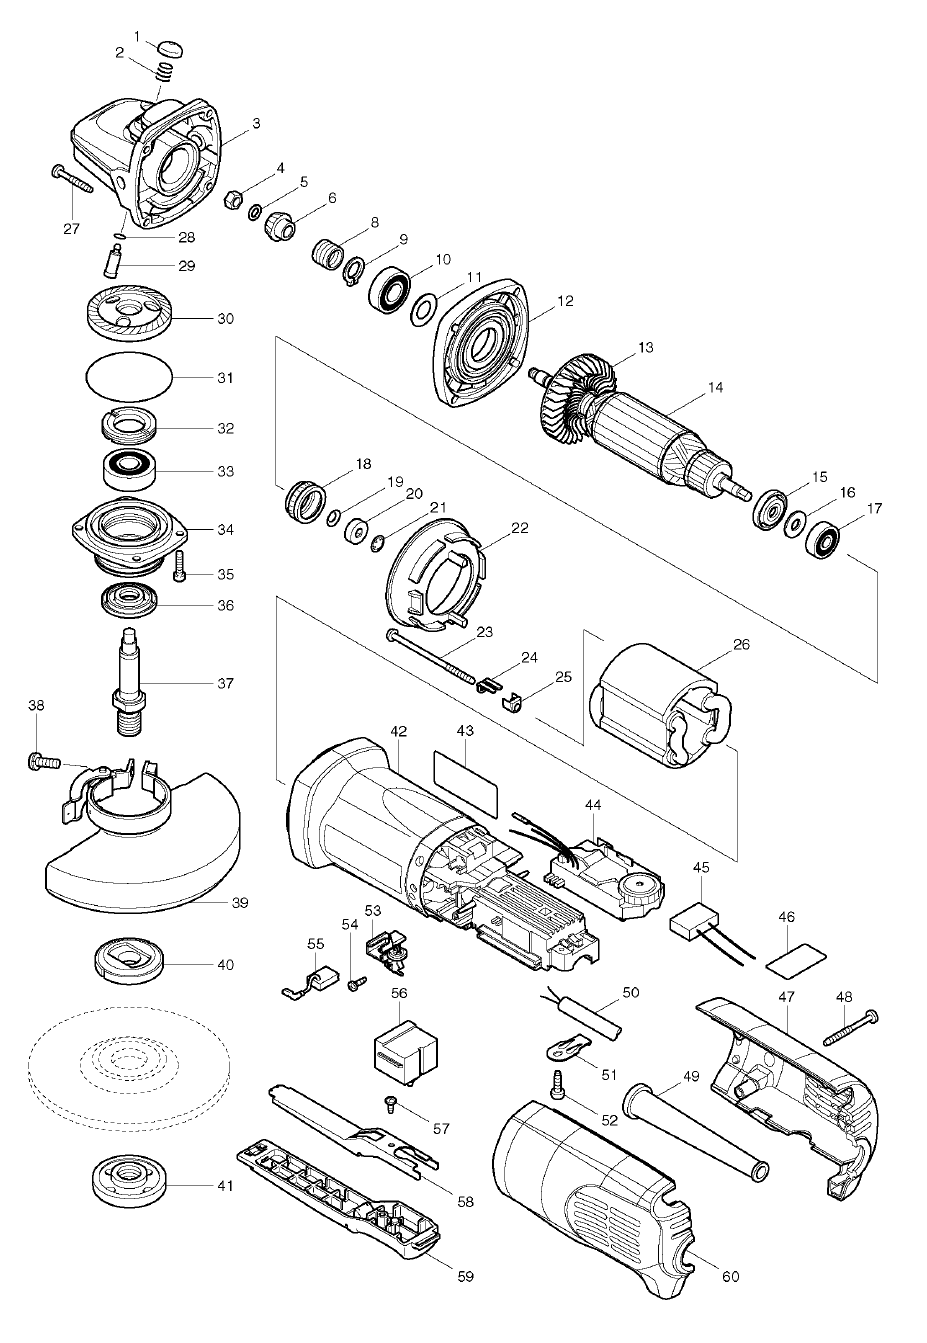 Makita Parts Diagram - a-k-b.info on